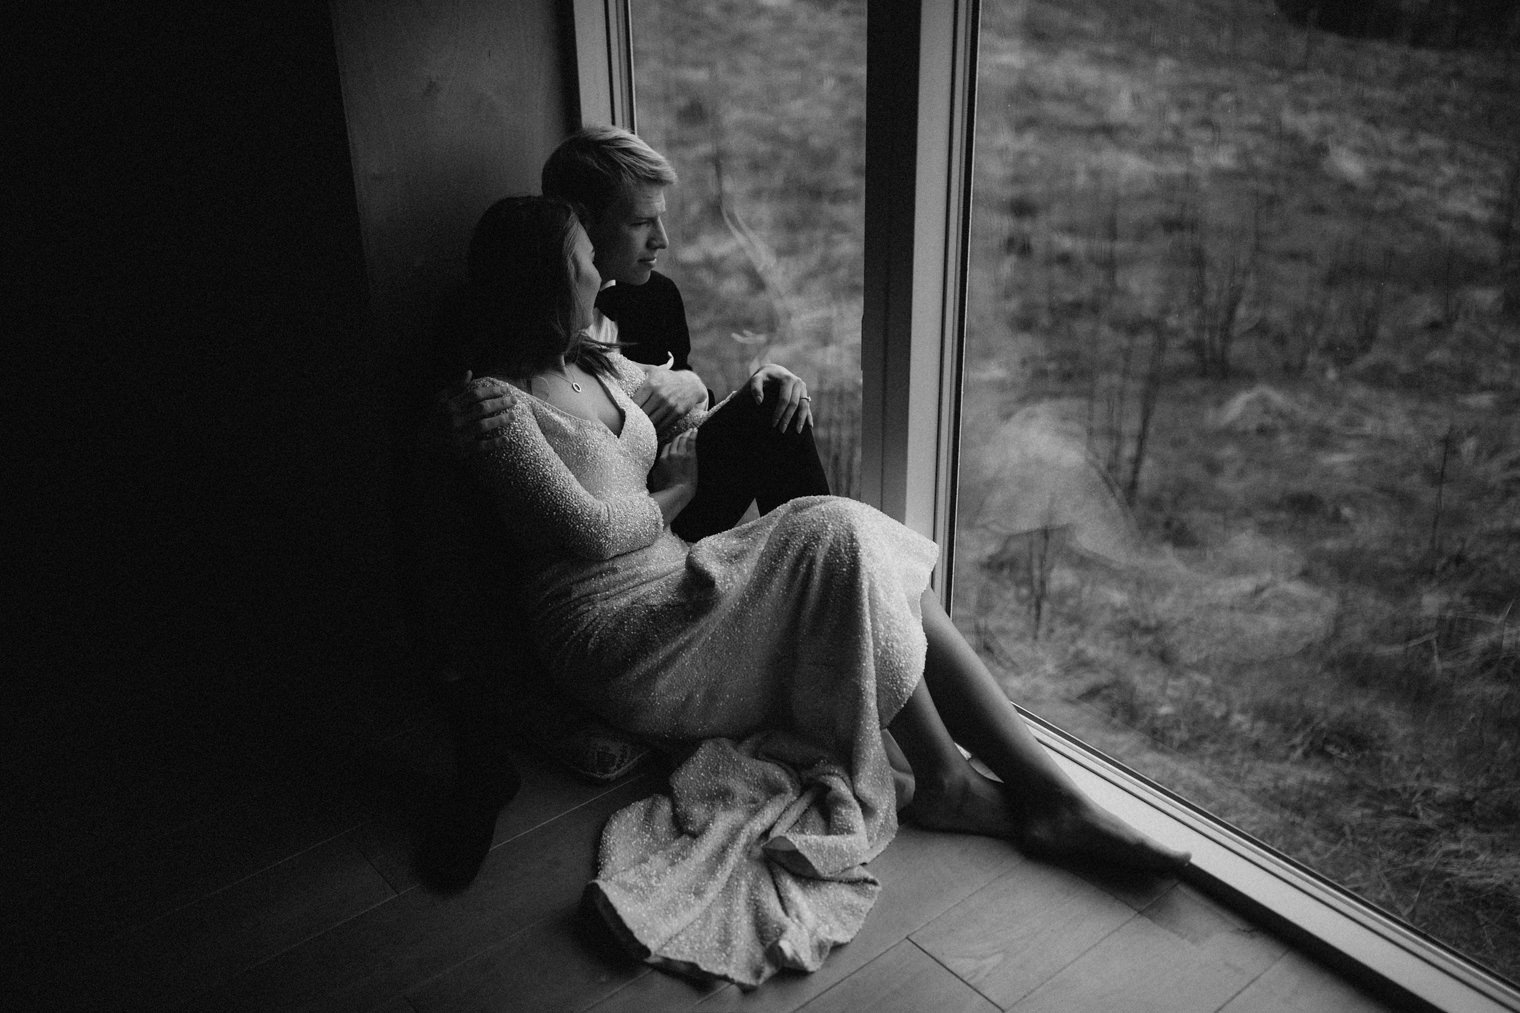 Bride and groom sharing a moment together looking at the landscape in Iceland